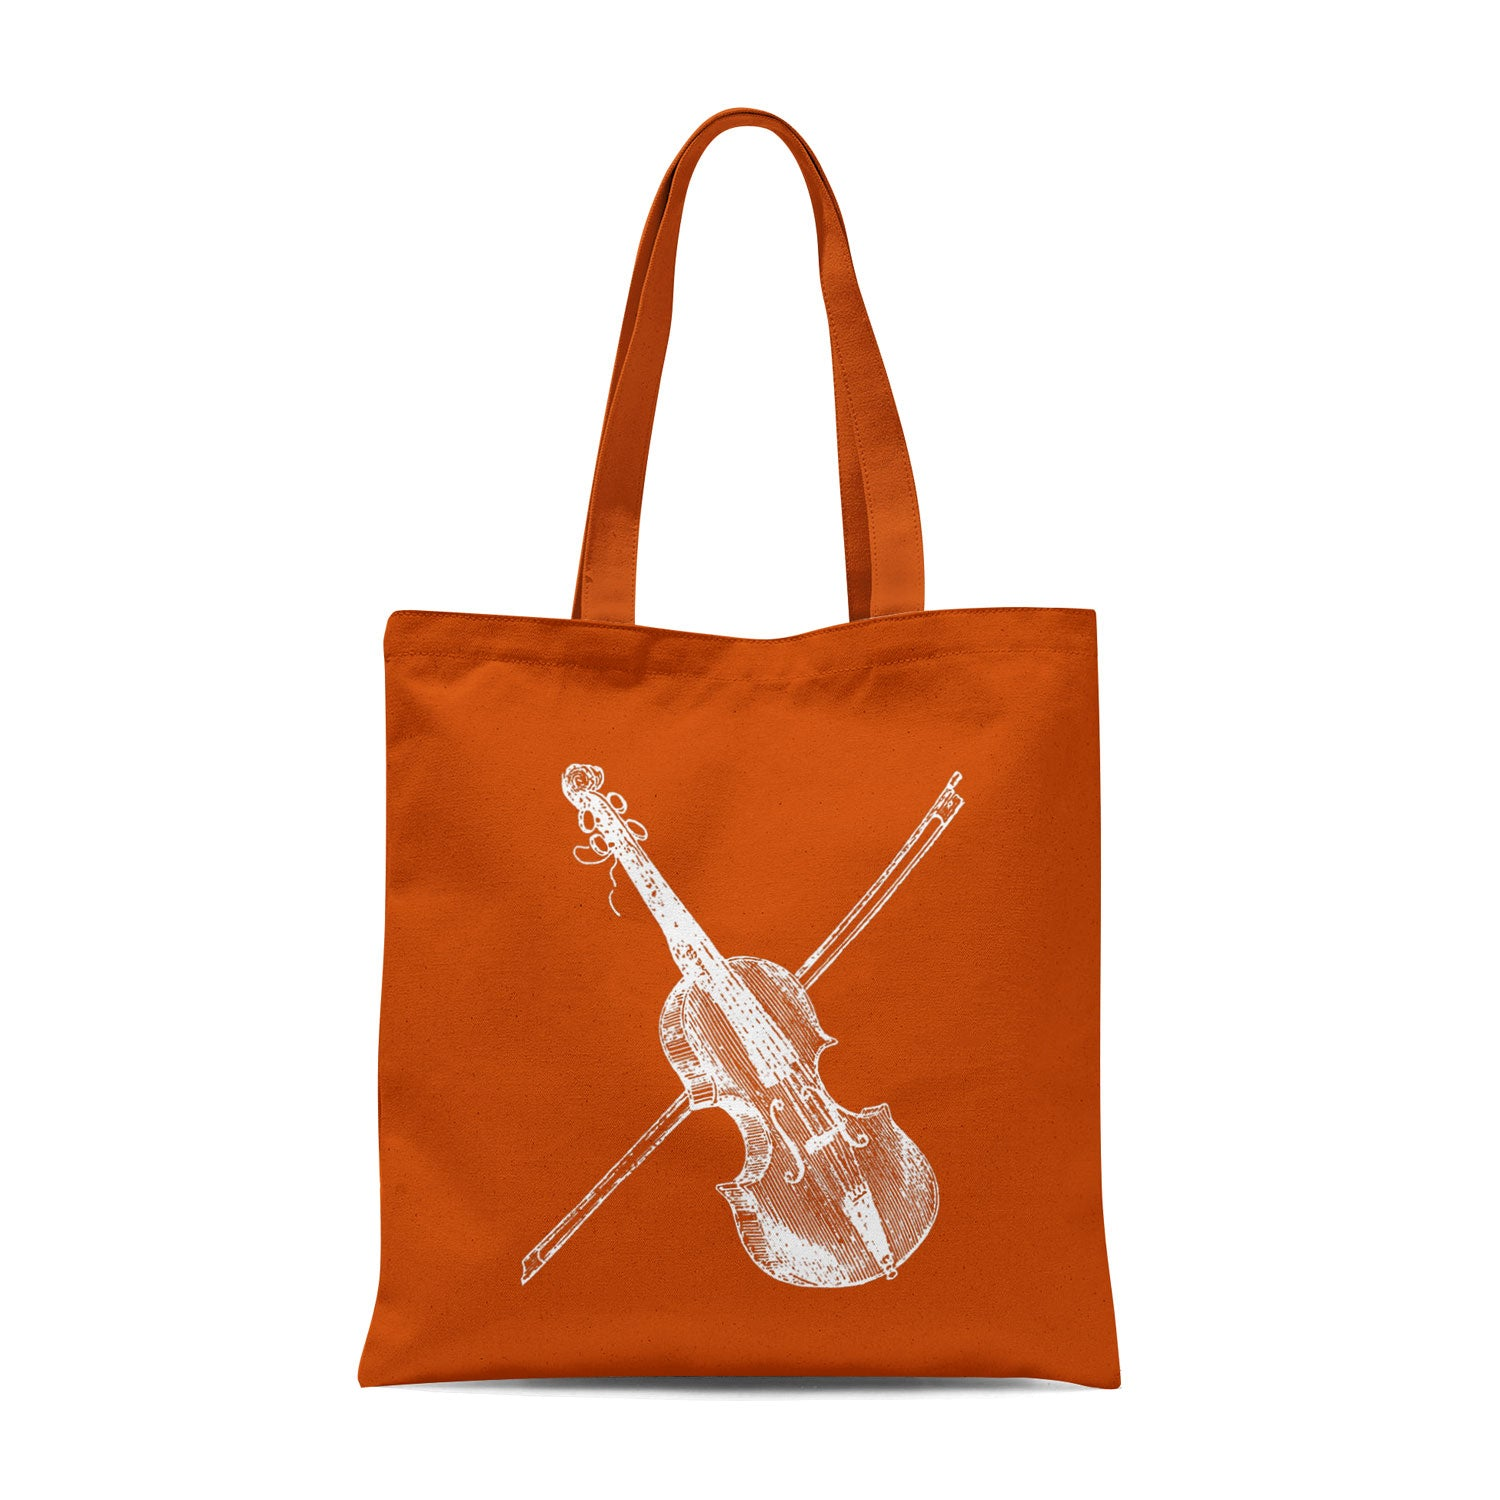 orange tote bag with white violin illustration